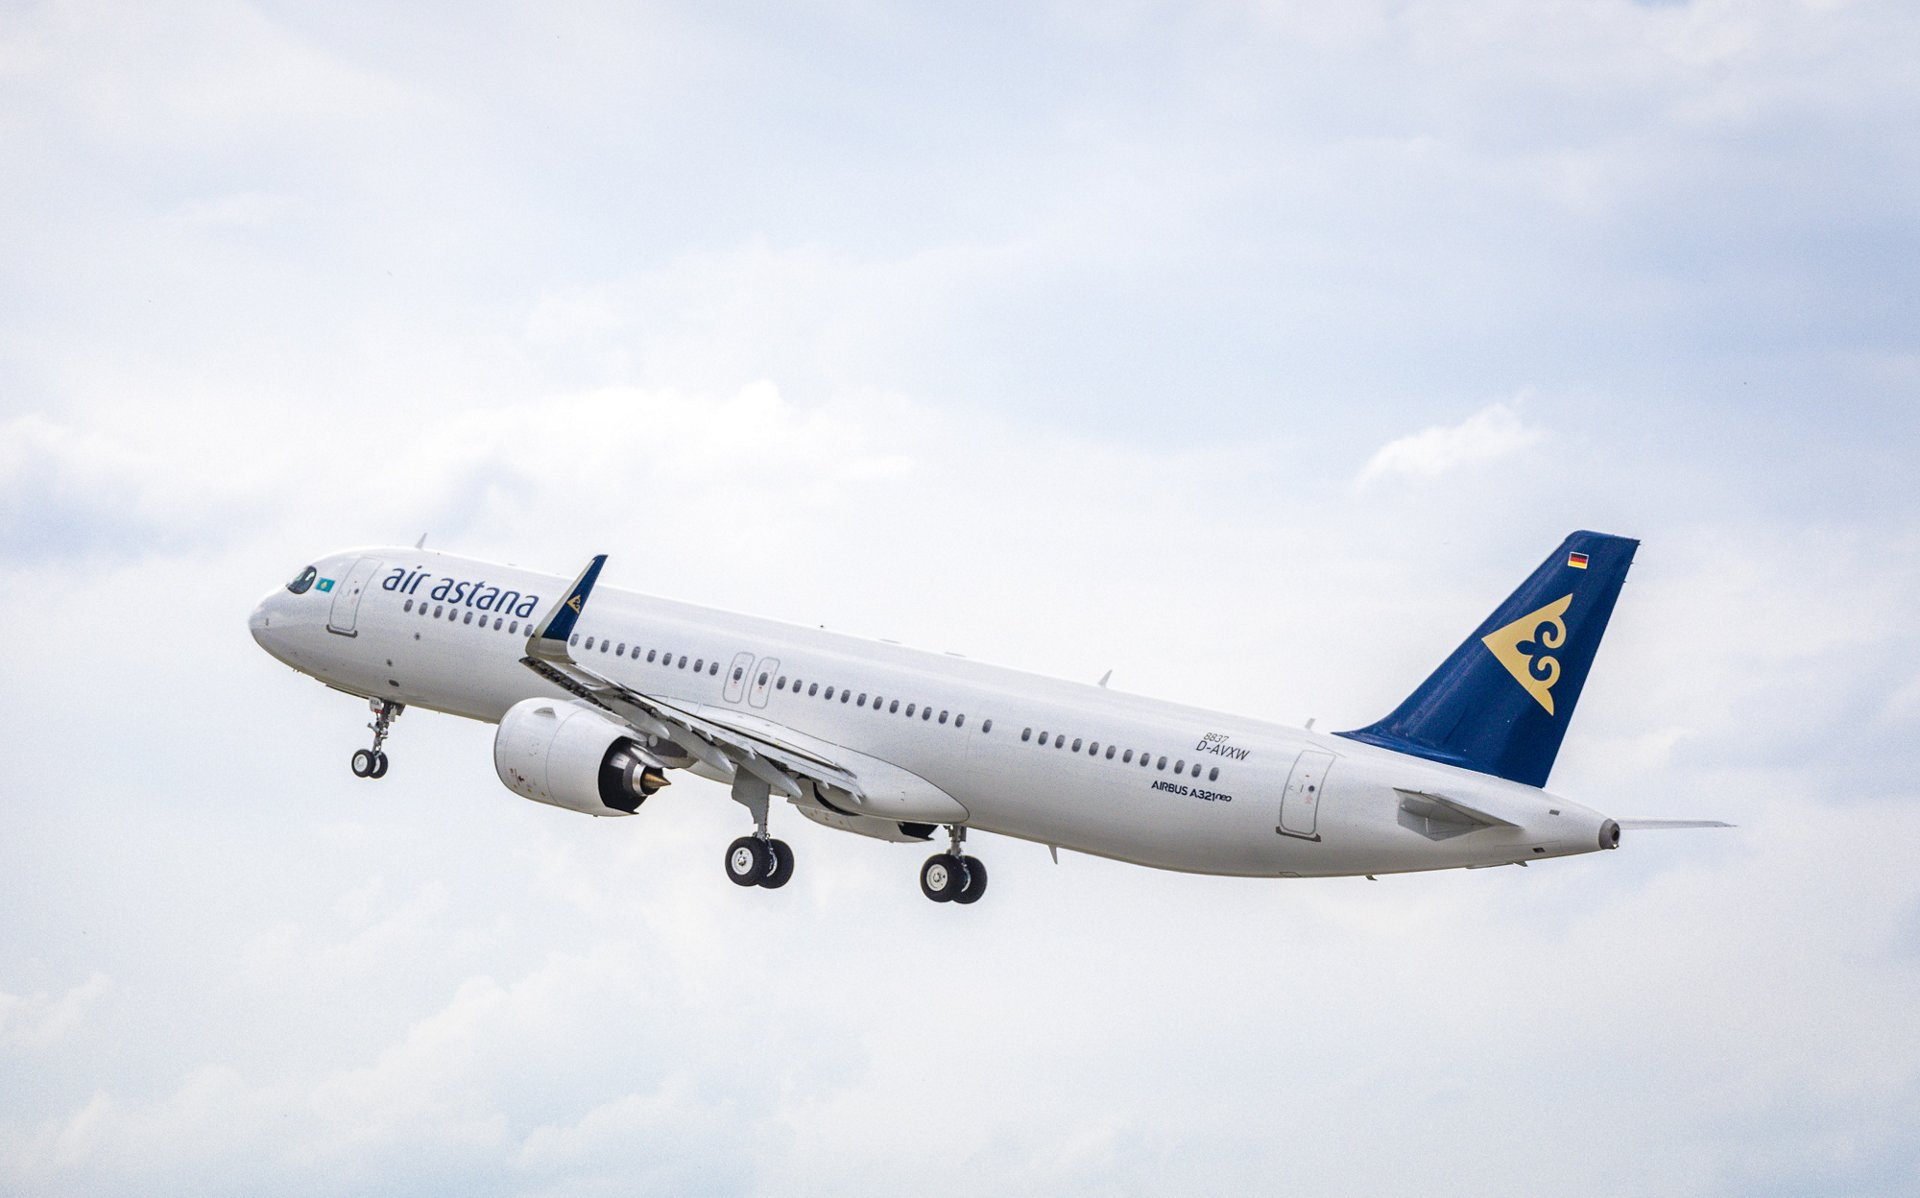 Air Astana's first A321LR on lease from Air Lease Corporation offers premium wide-body comfort in a single-aisle aircraft cabin